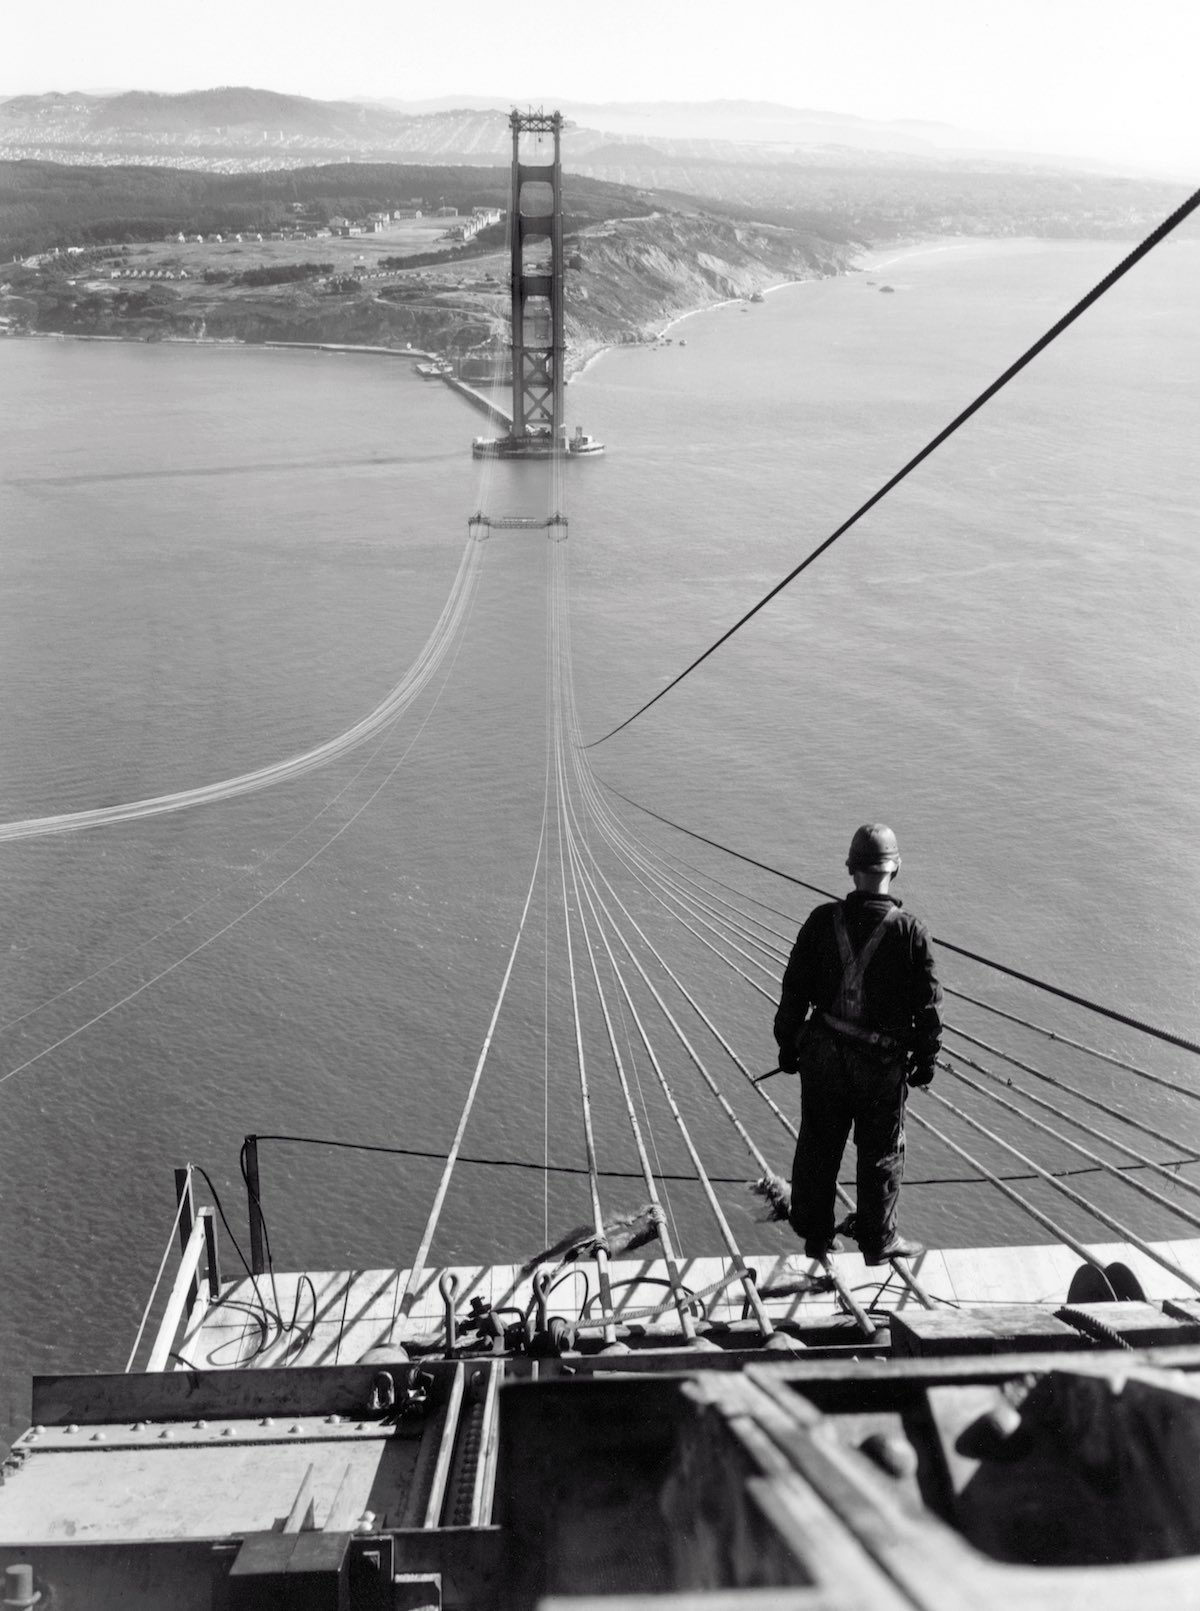 1935 - A man standing on the first cables during the construction of the Golden Gate Bridge, with the Presidio and San Francisco in the background.